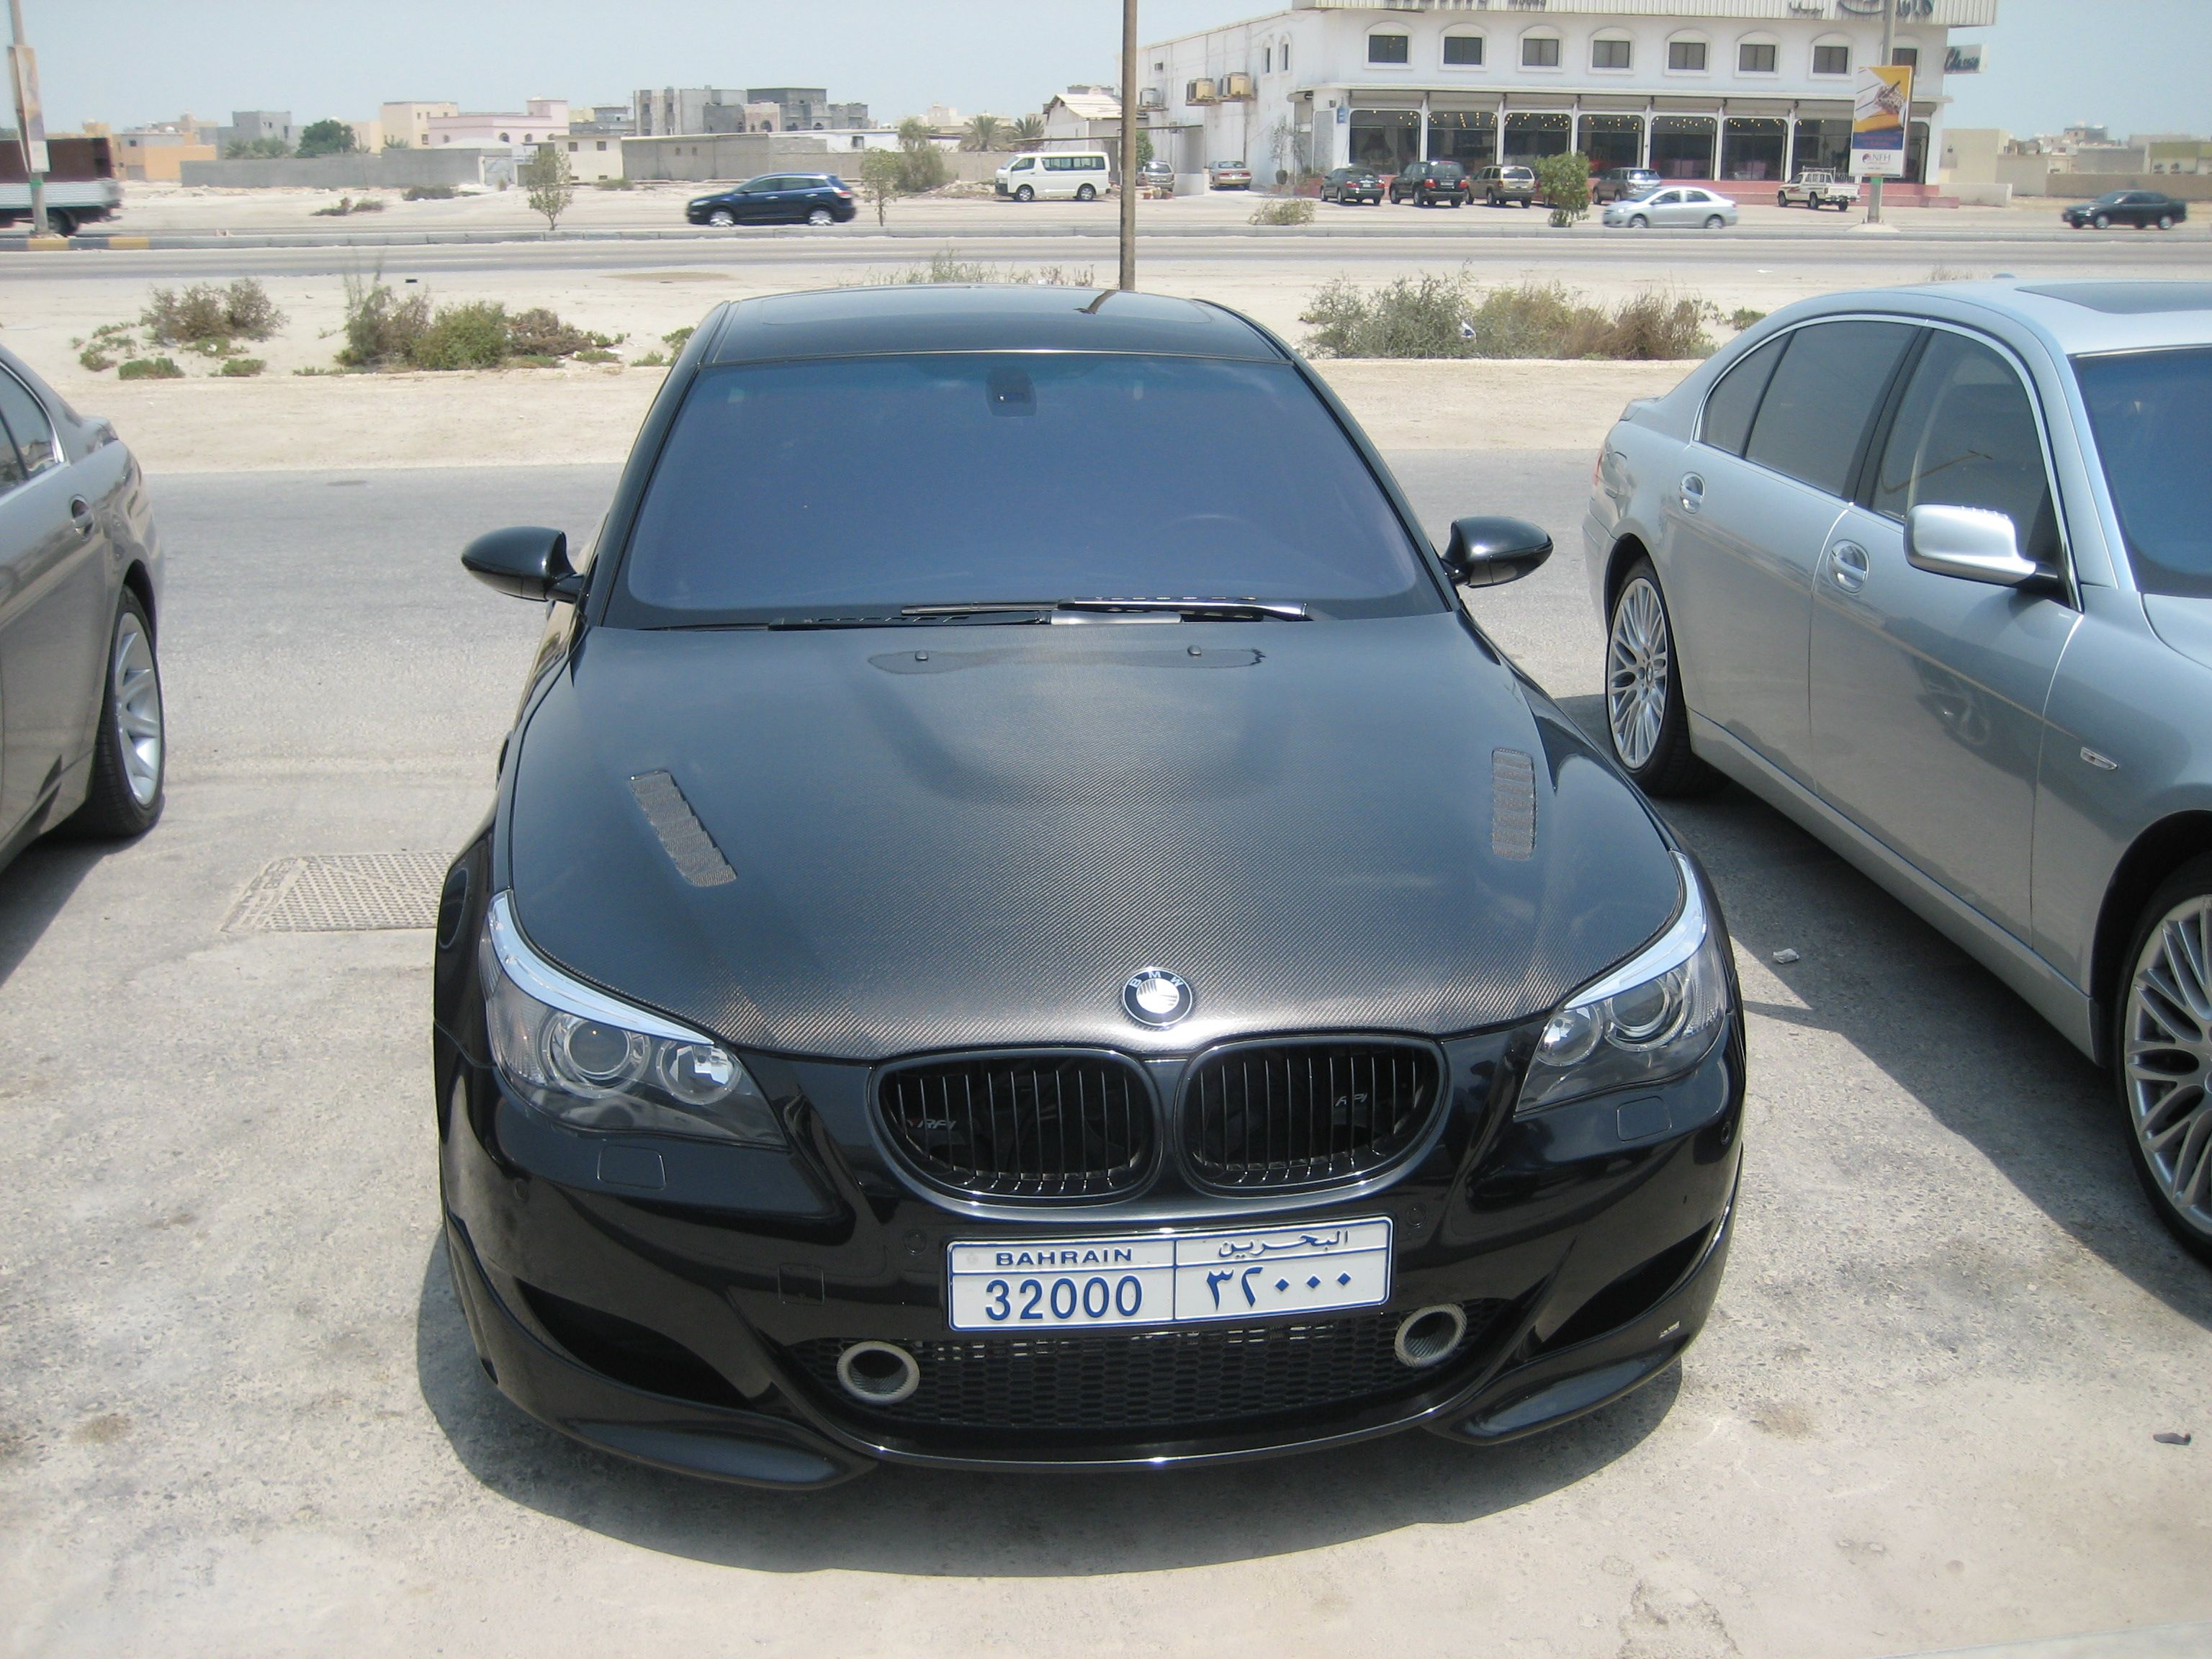 Best Bmw M5 Was The E60 Especially With A Carbon Fiber Hood Ruh